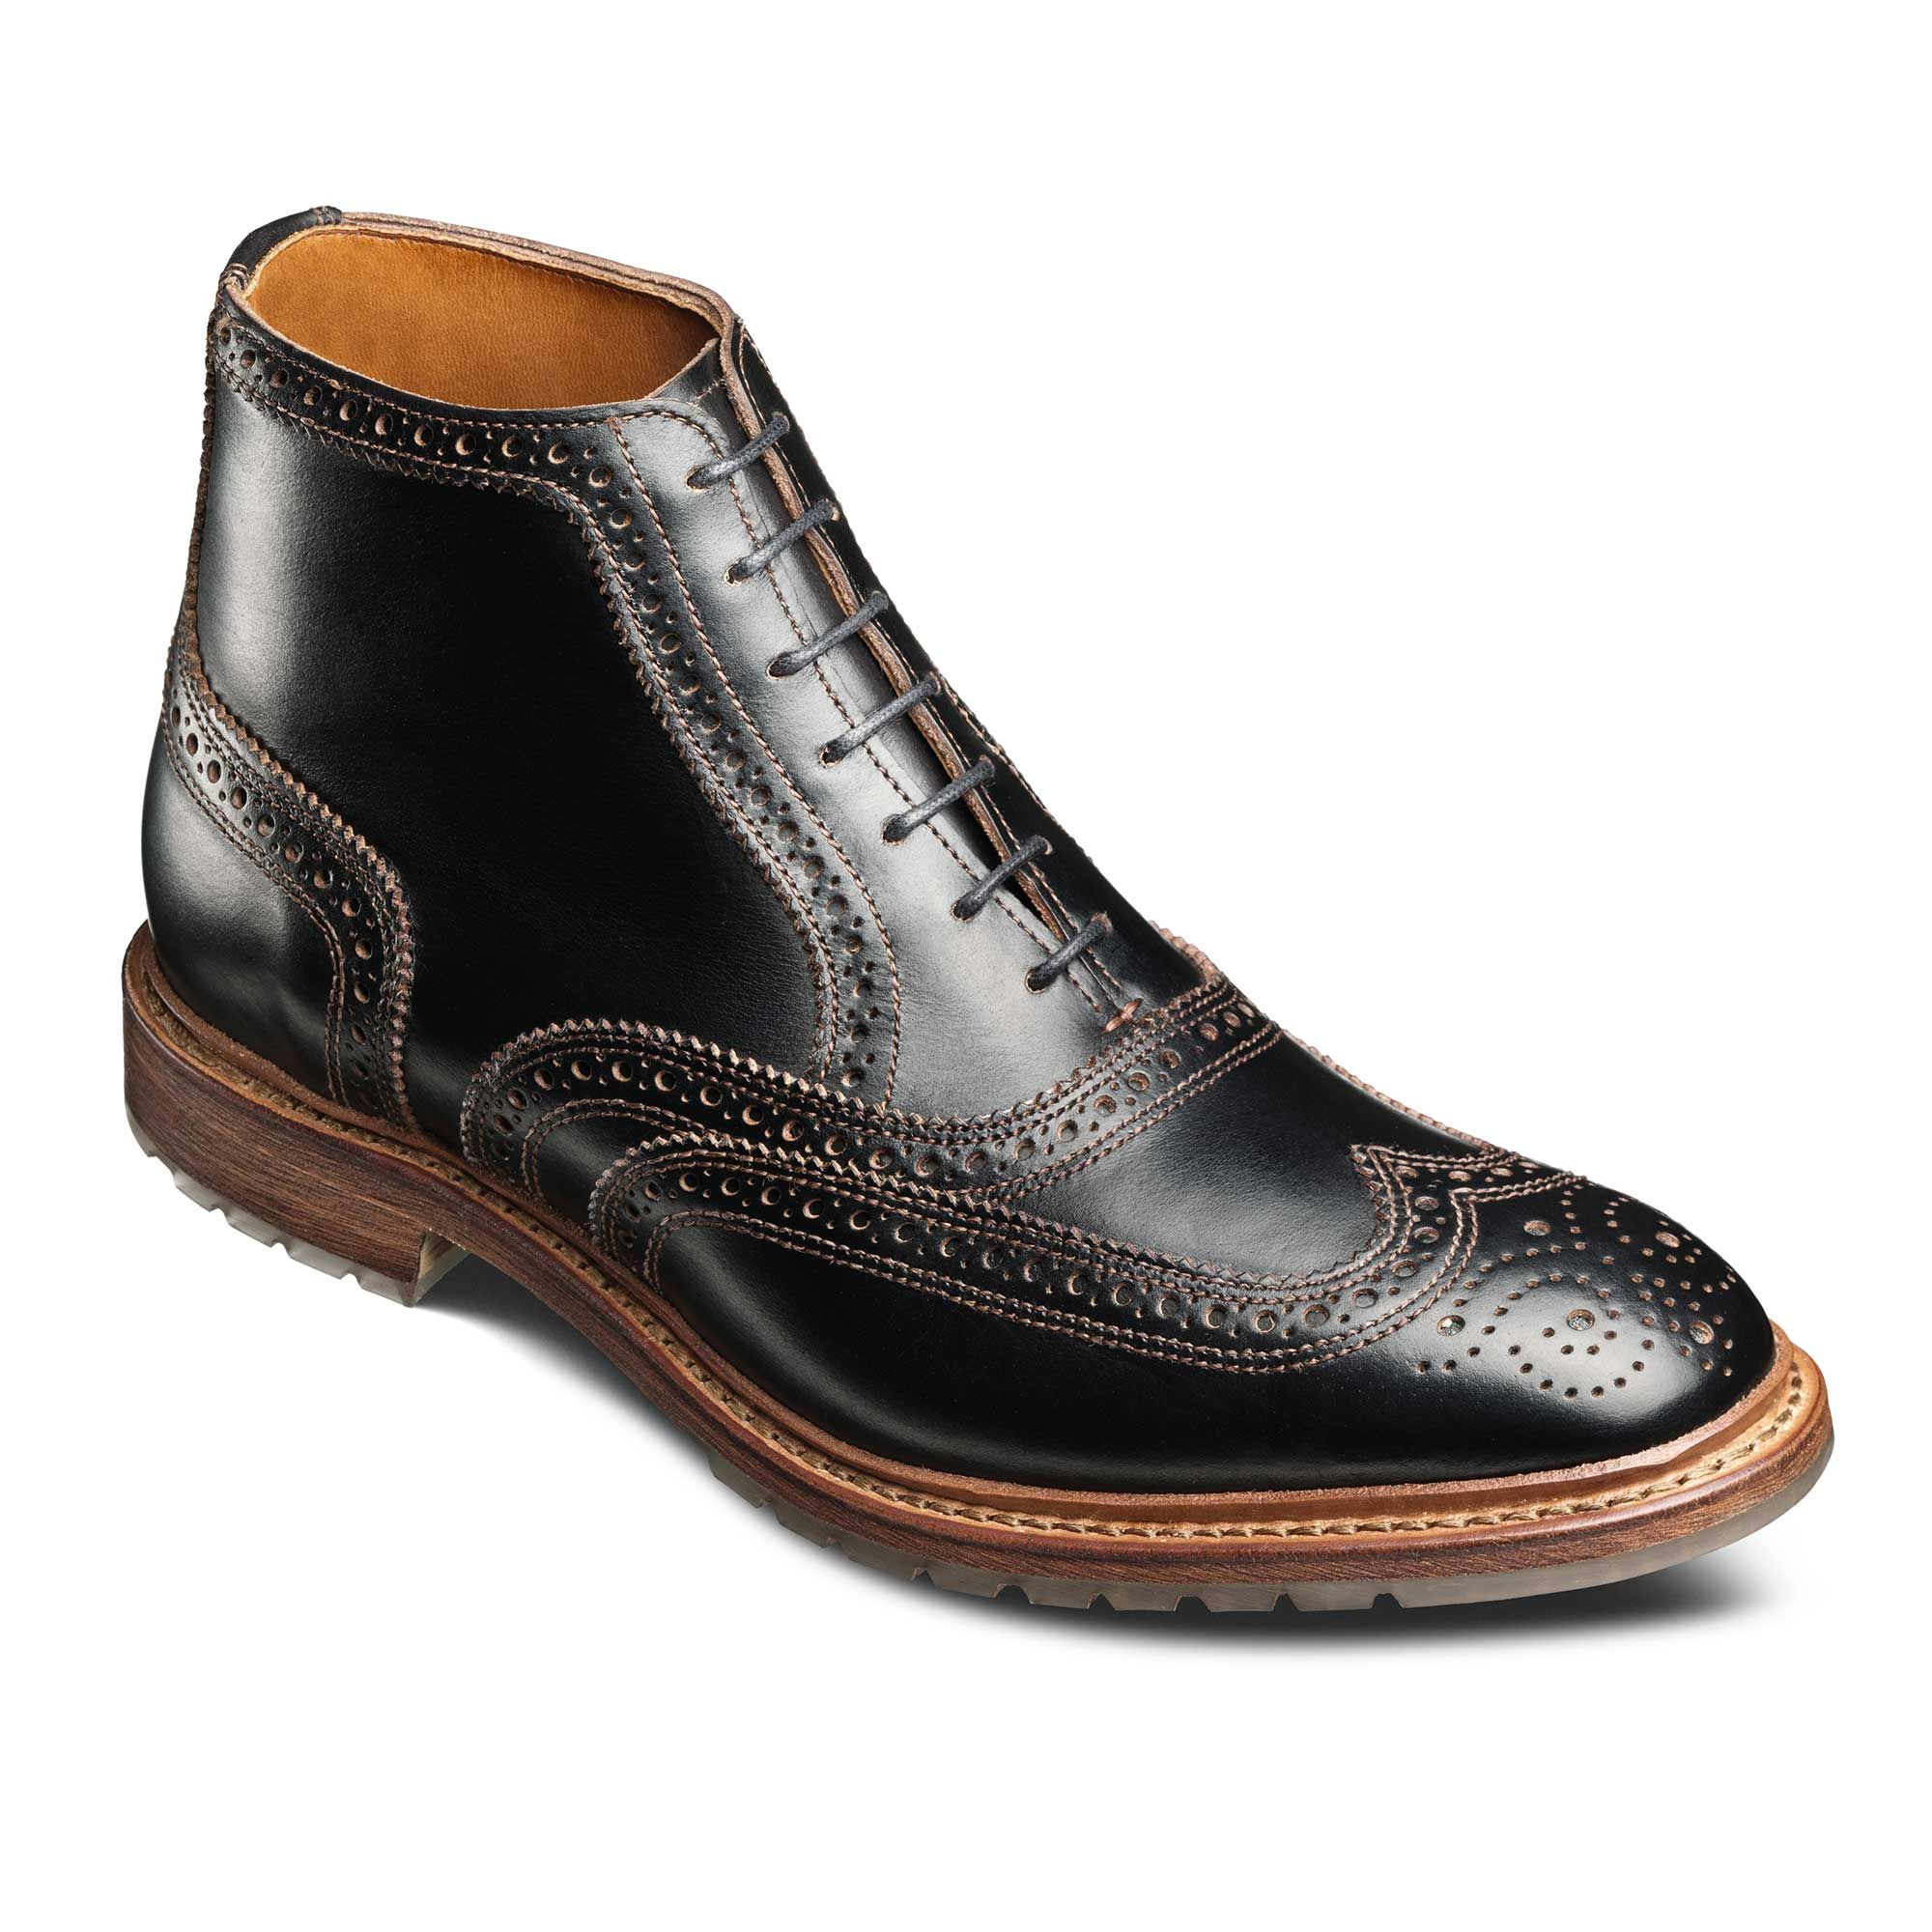 Stirling Boot by Allen Edmonds Allen Edmonds